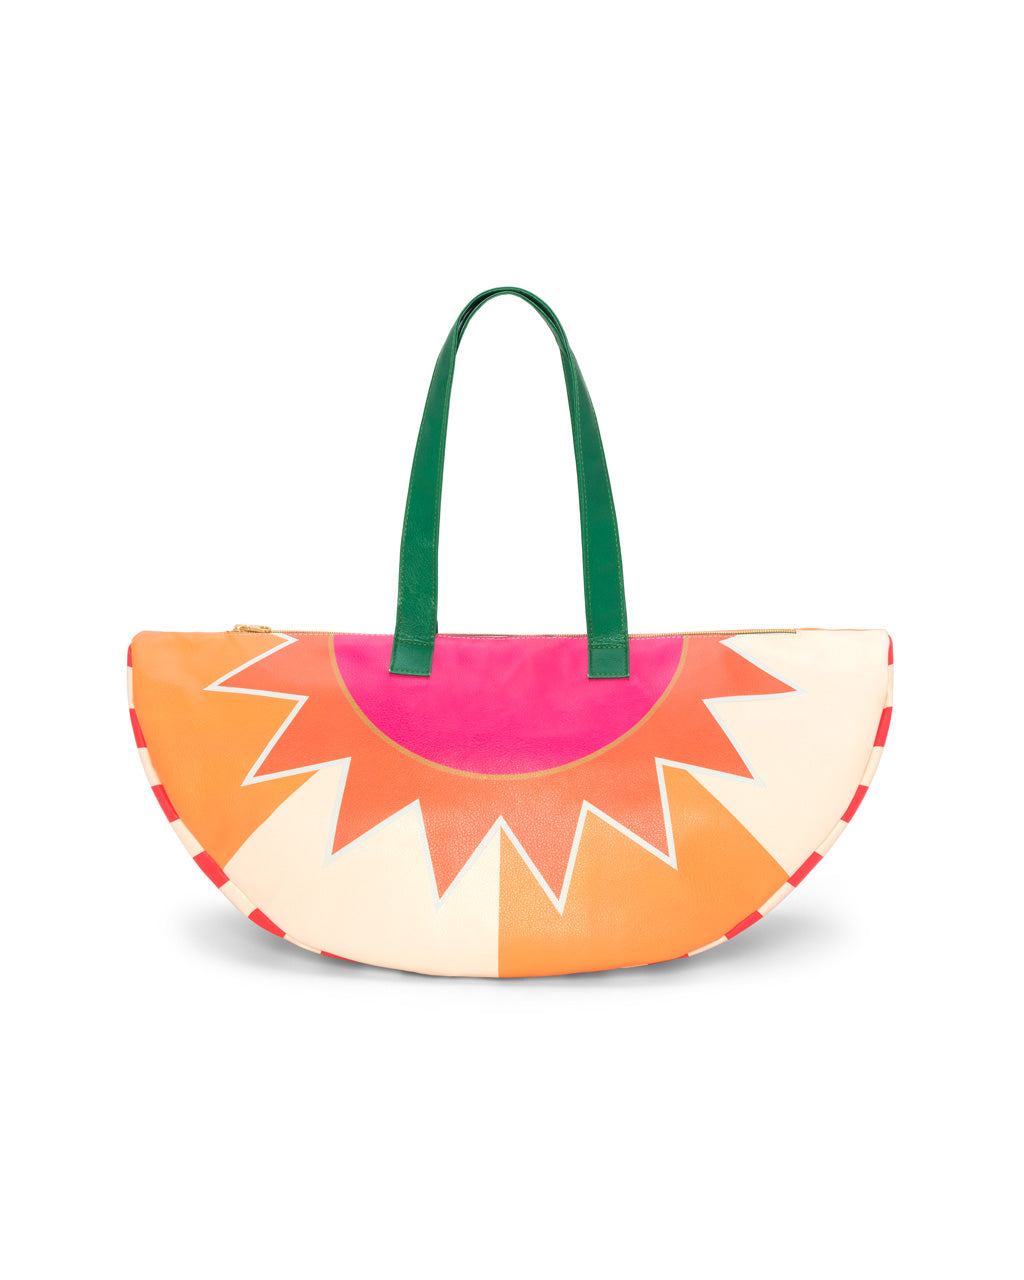 Leatherette shaped cooler bag with bright design